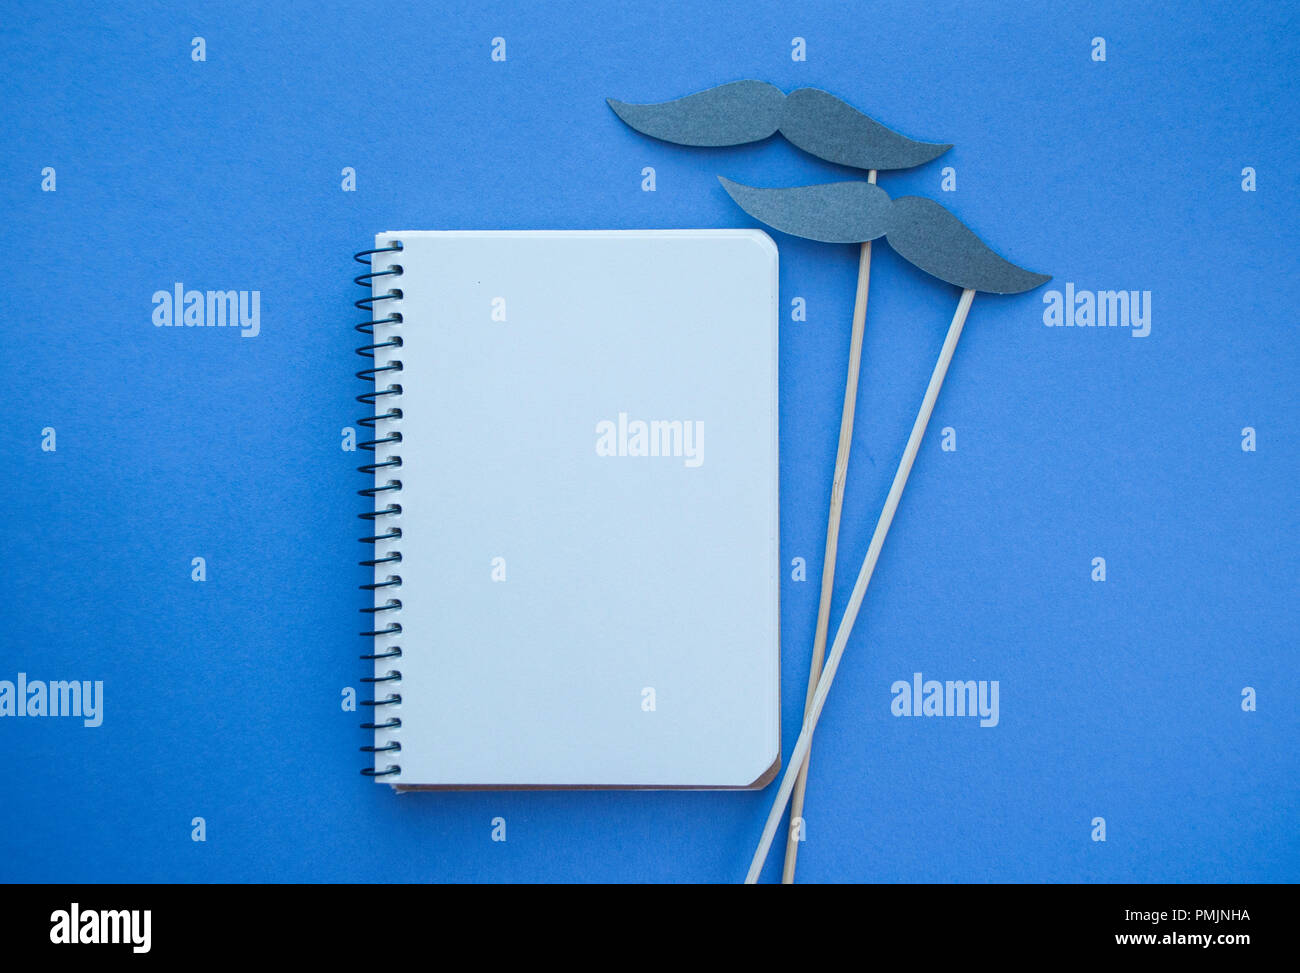 Photo booth props and white notebook on purple background with copyspace. Movember men's health awareness concept. - Stock Image